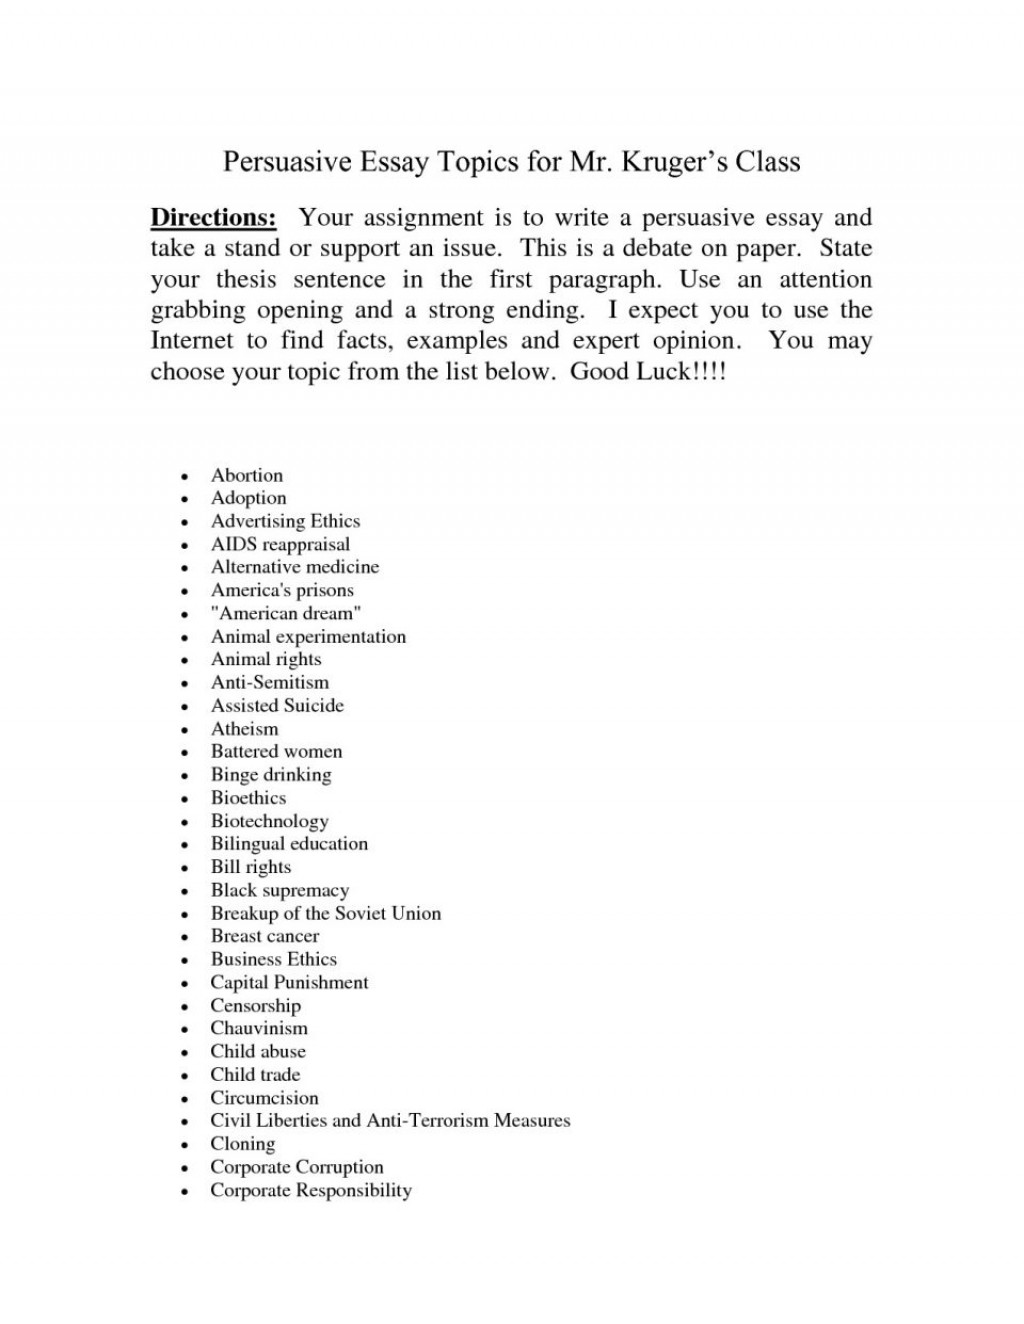 001 Research Paper Topic For Essay Barca Fontanacountryinn Within Good Persuasive Narrative Topics To Write Abo Easy About Personal Descriptive Informative Synthesis College 960x1242 Beautiful Students English 101 Psychology Large